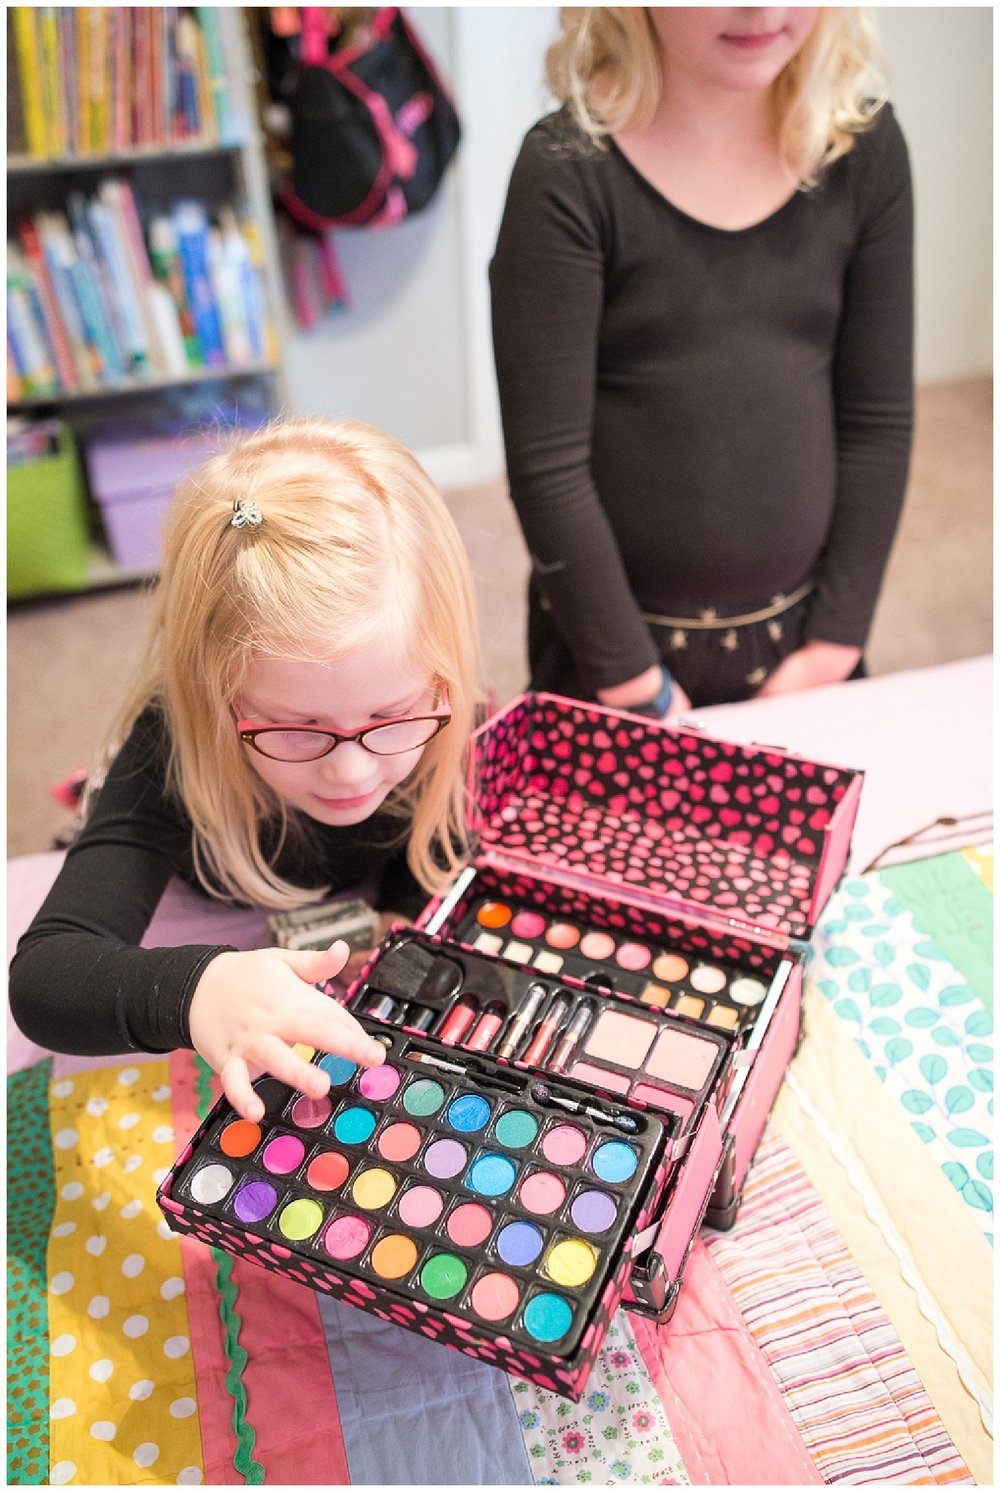 Tess's favorite thing is her brightly colored makeup kit and Lily's is, well, her makeup kit, albeit a little less bright.